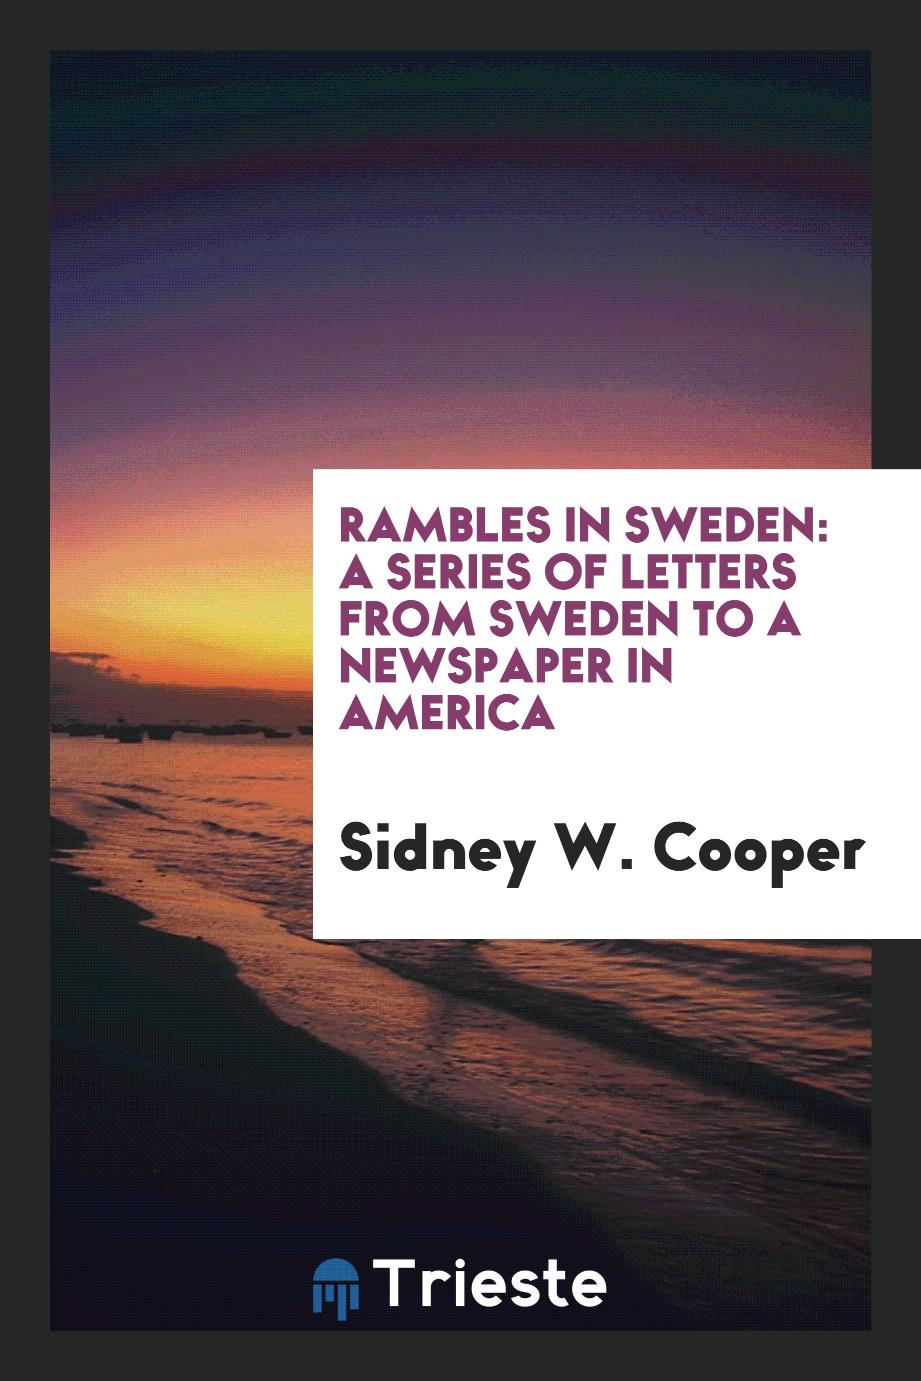 Rambles in Sweden: A Series of Letters from Sweden to a Newspaper in America